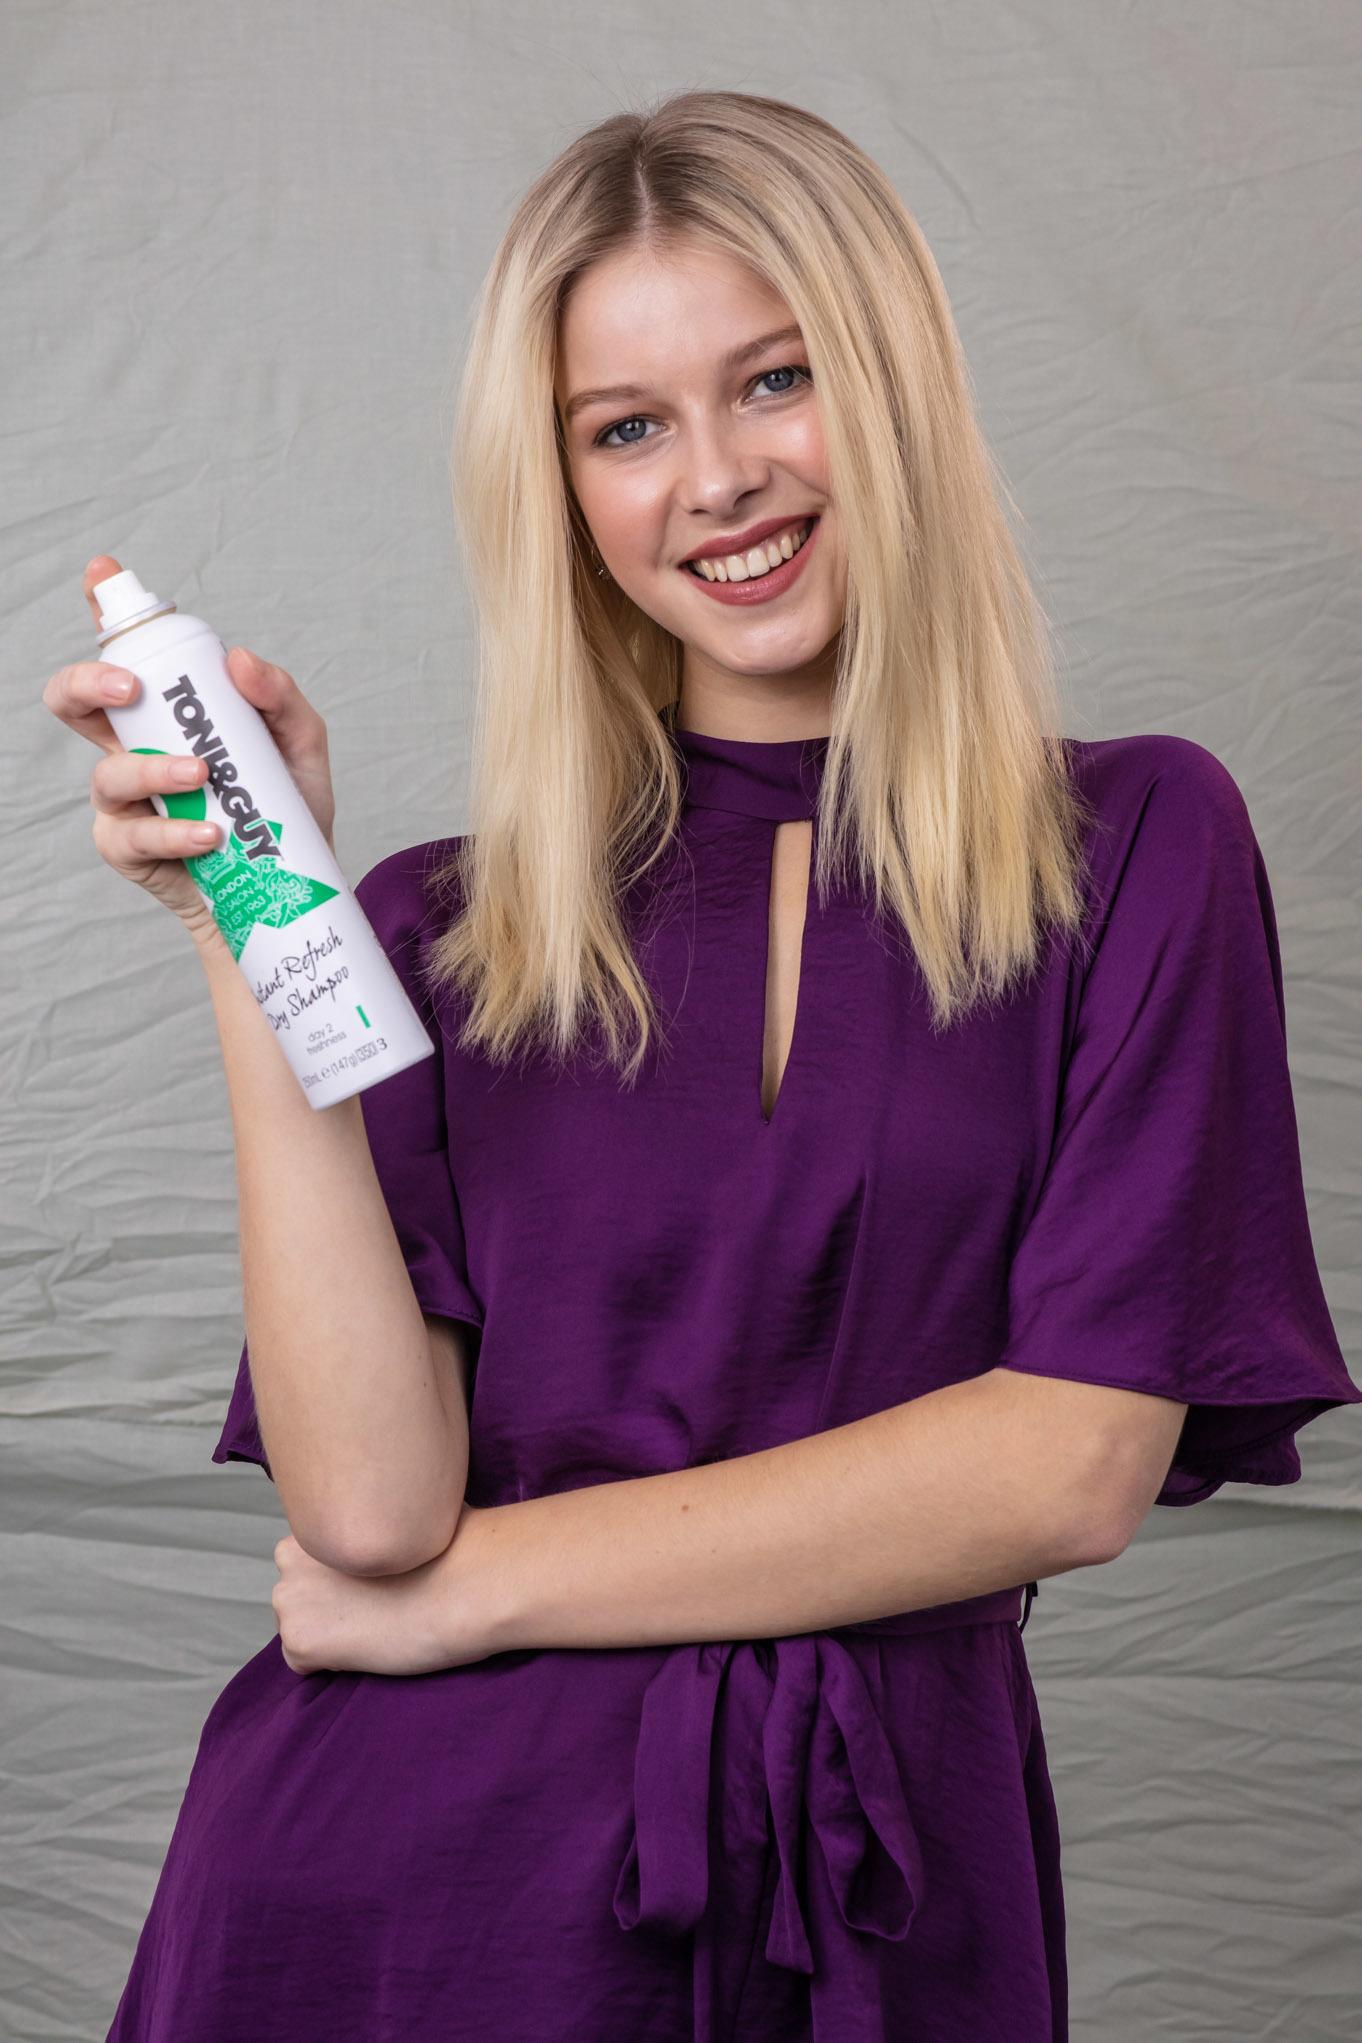 Volume hair: Blonde model with straight, shoulder-length hair, holding a TONI&GUY Dry Shampoo, wearing a purple floaty top